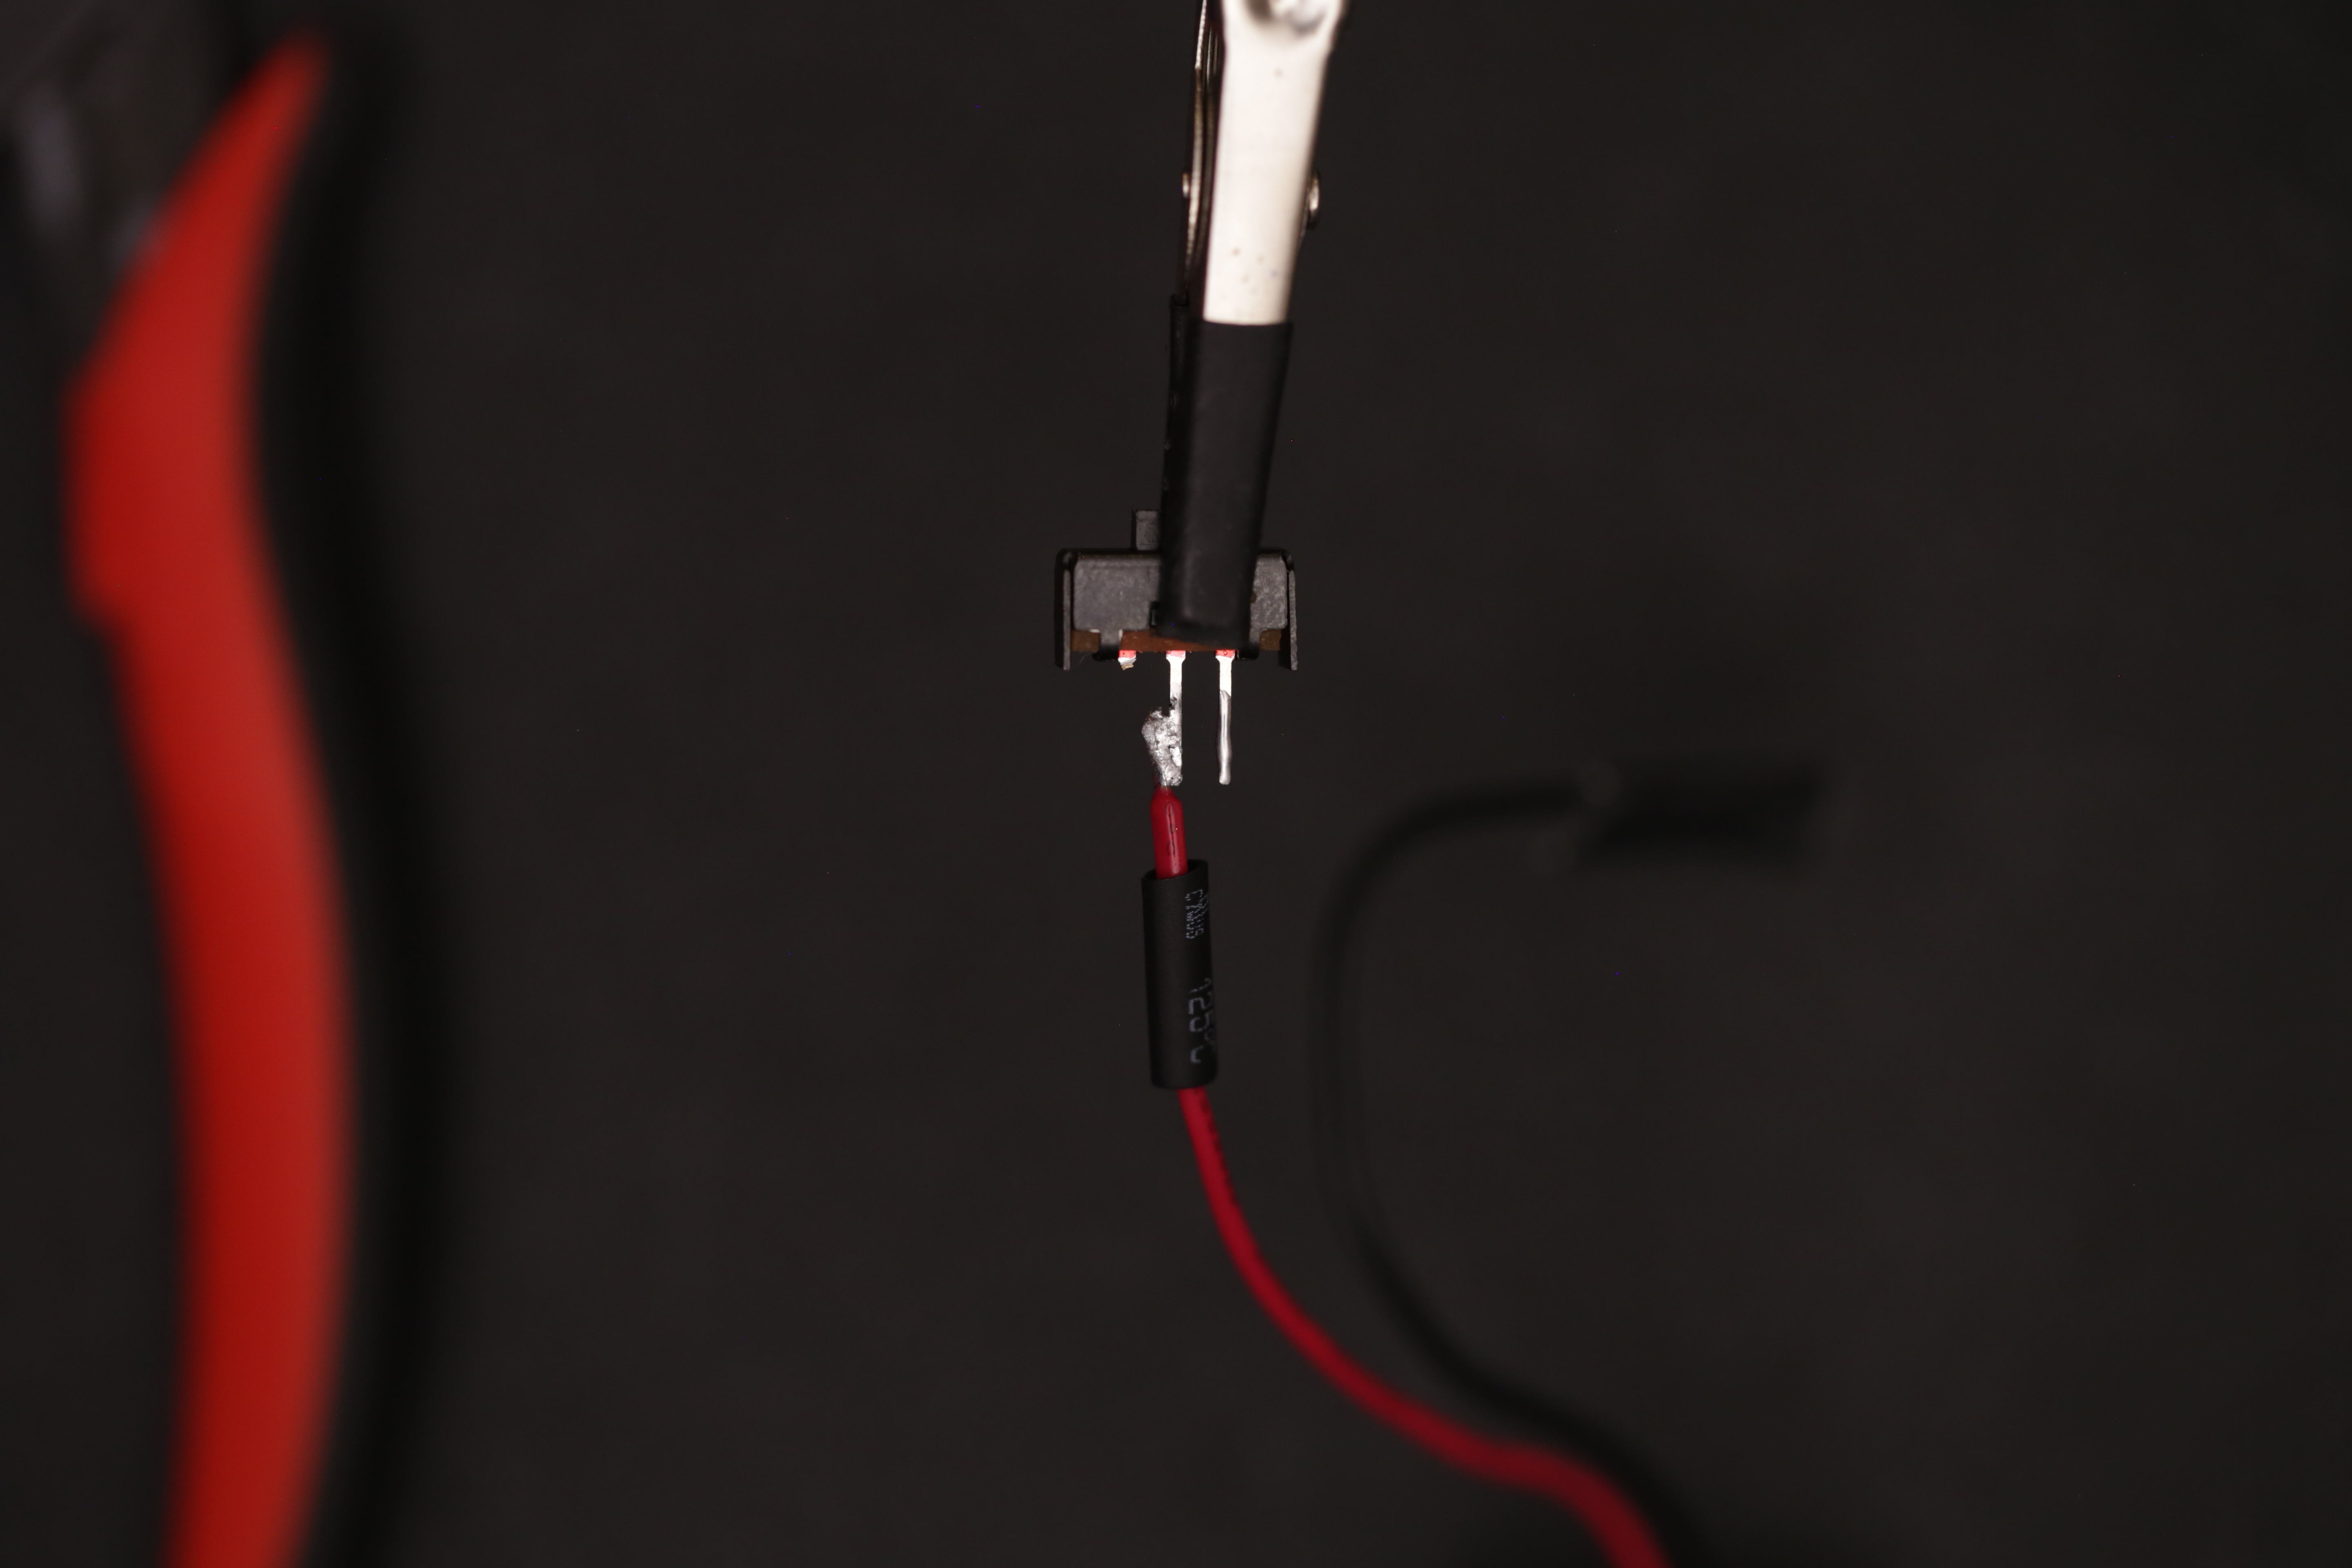 leds_solder_red_bat_wire_to_switch.jpg